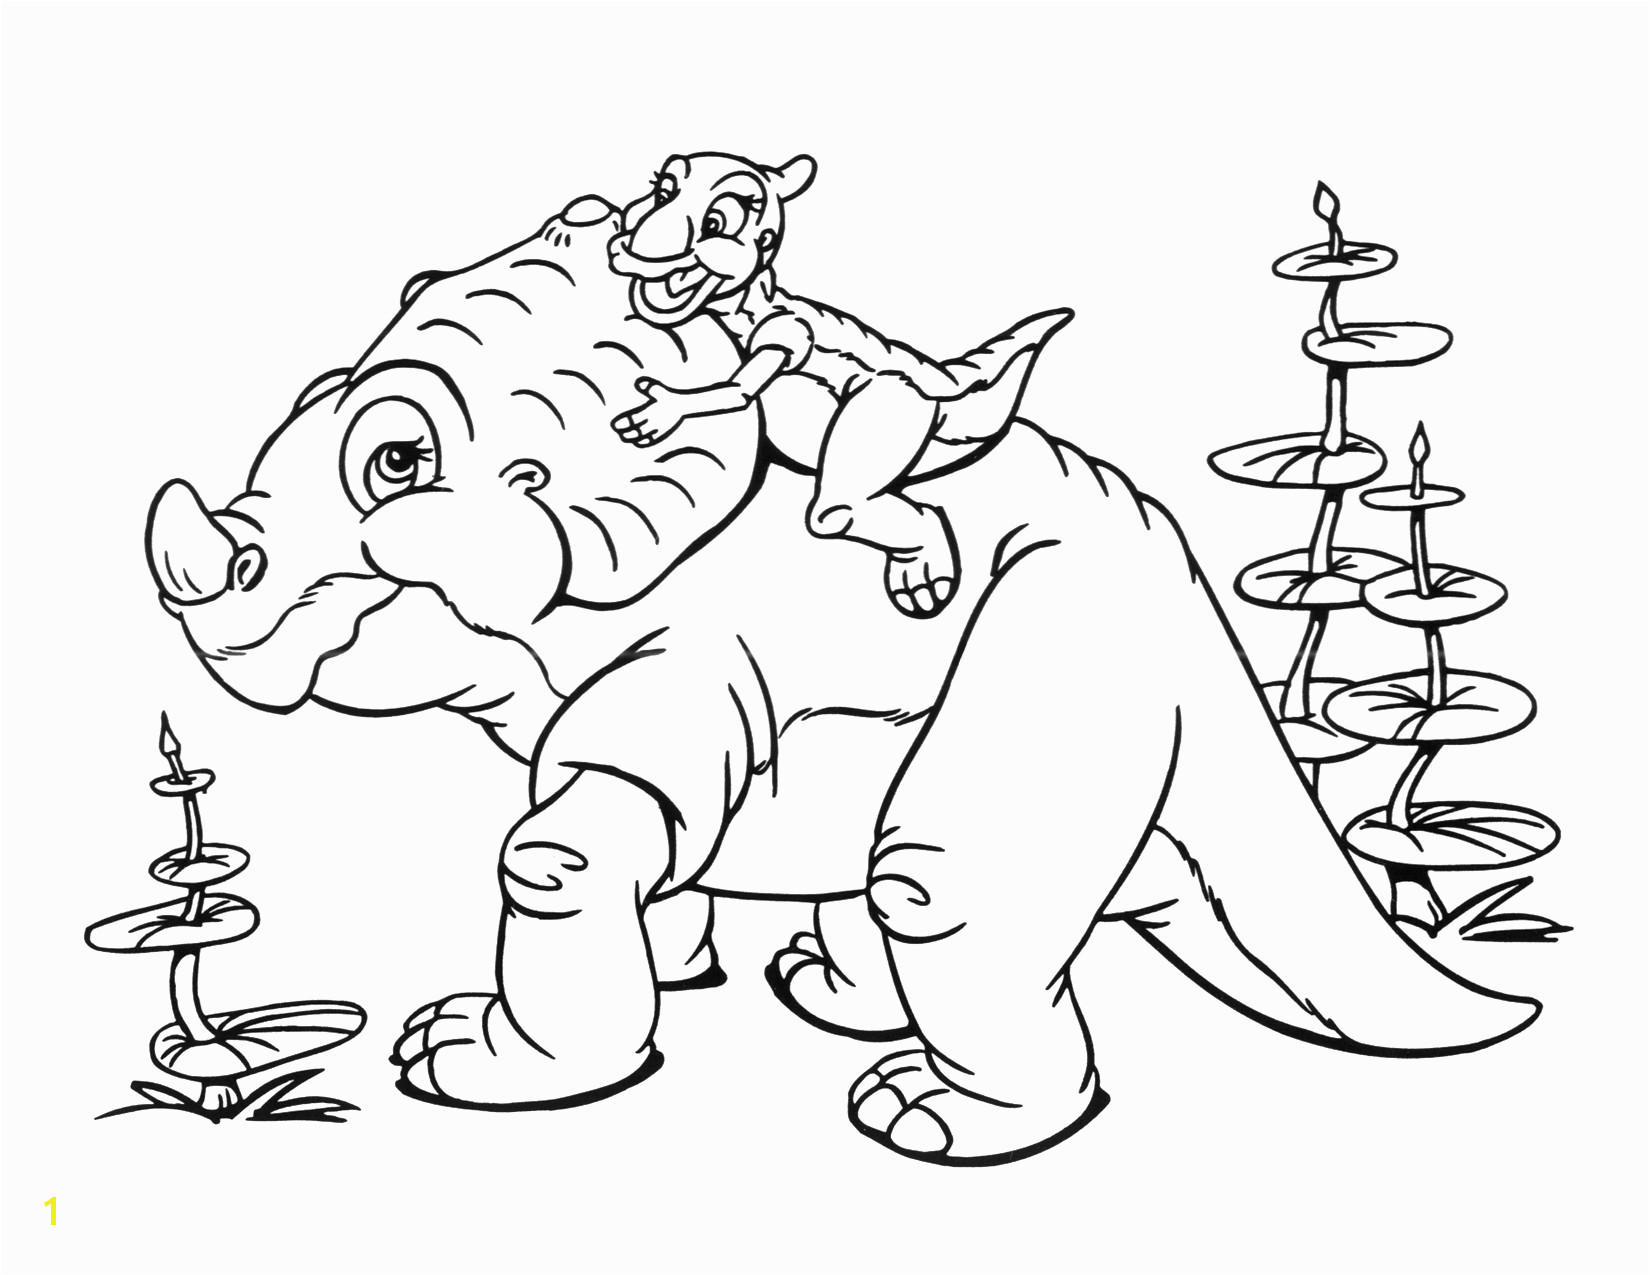 Epic Movie Coloring Pages Image Coloring Page 2 Movie 9 Land before Time Wiki